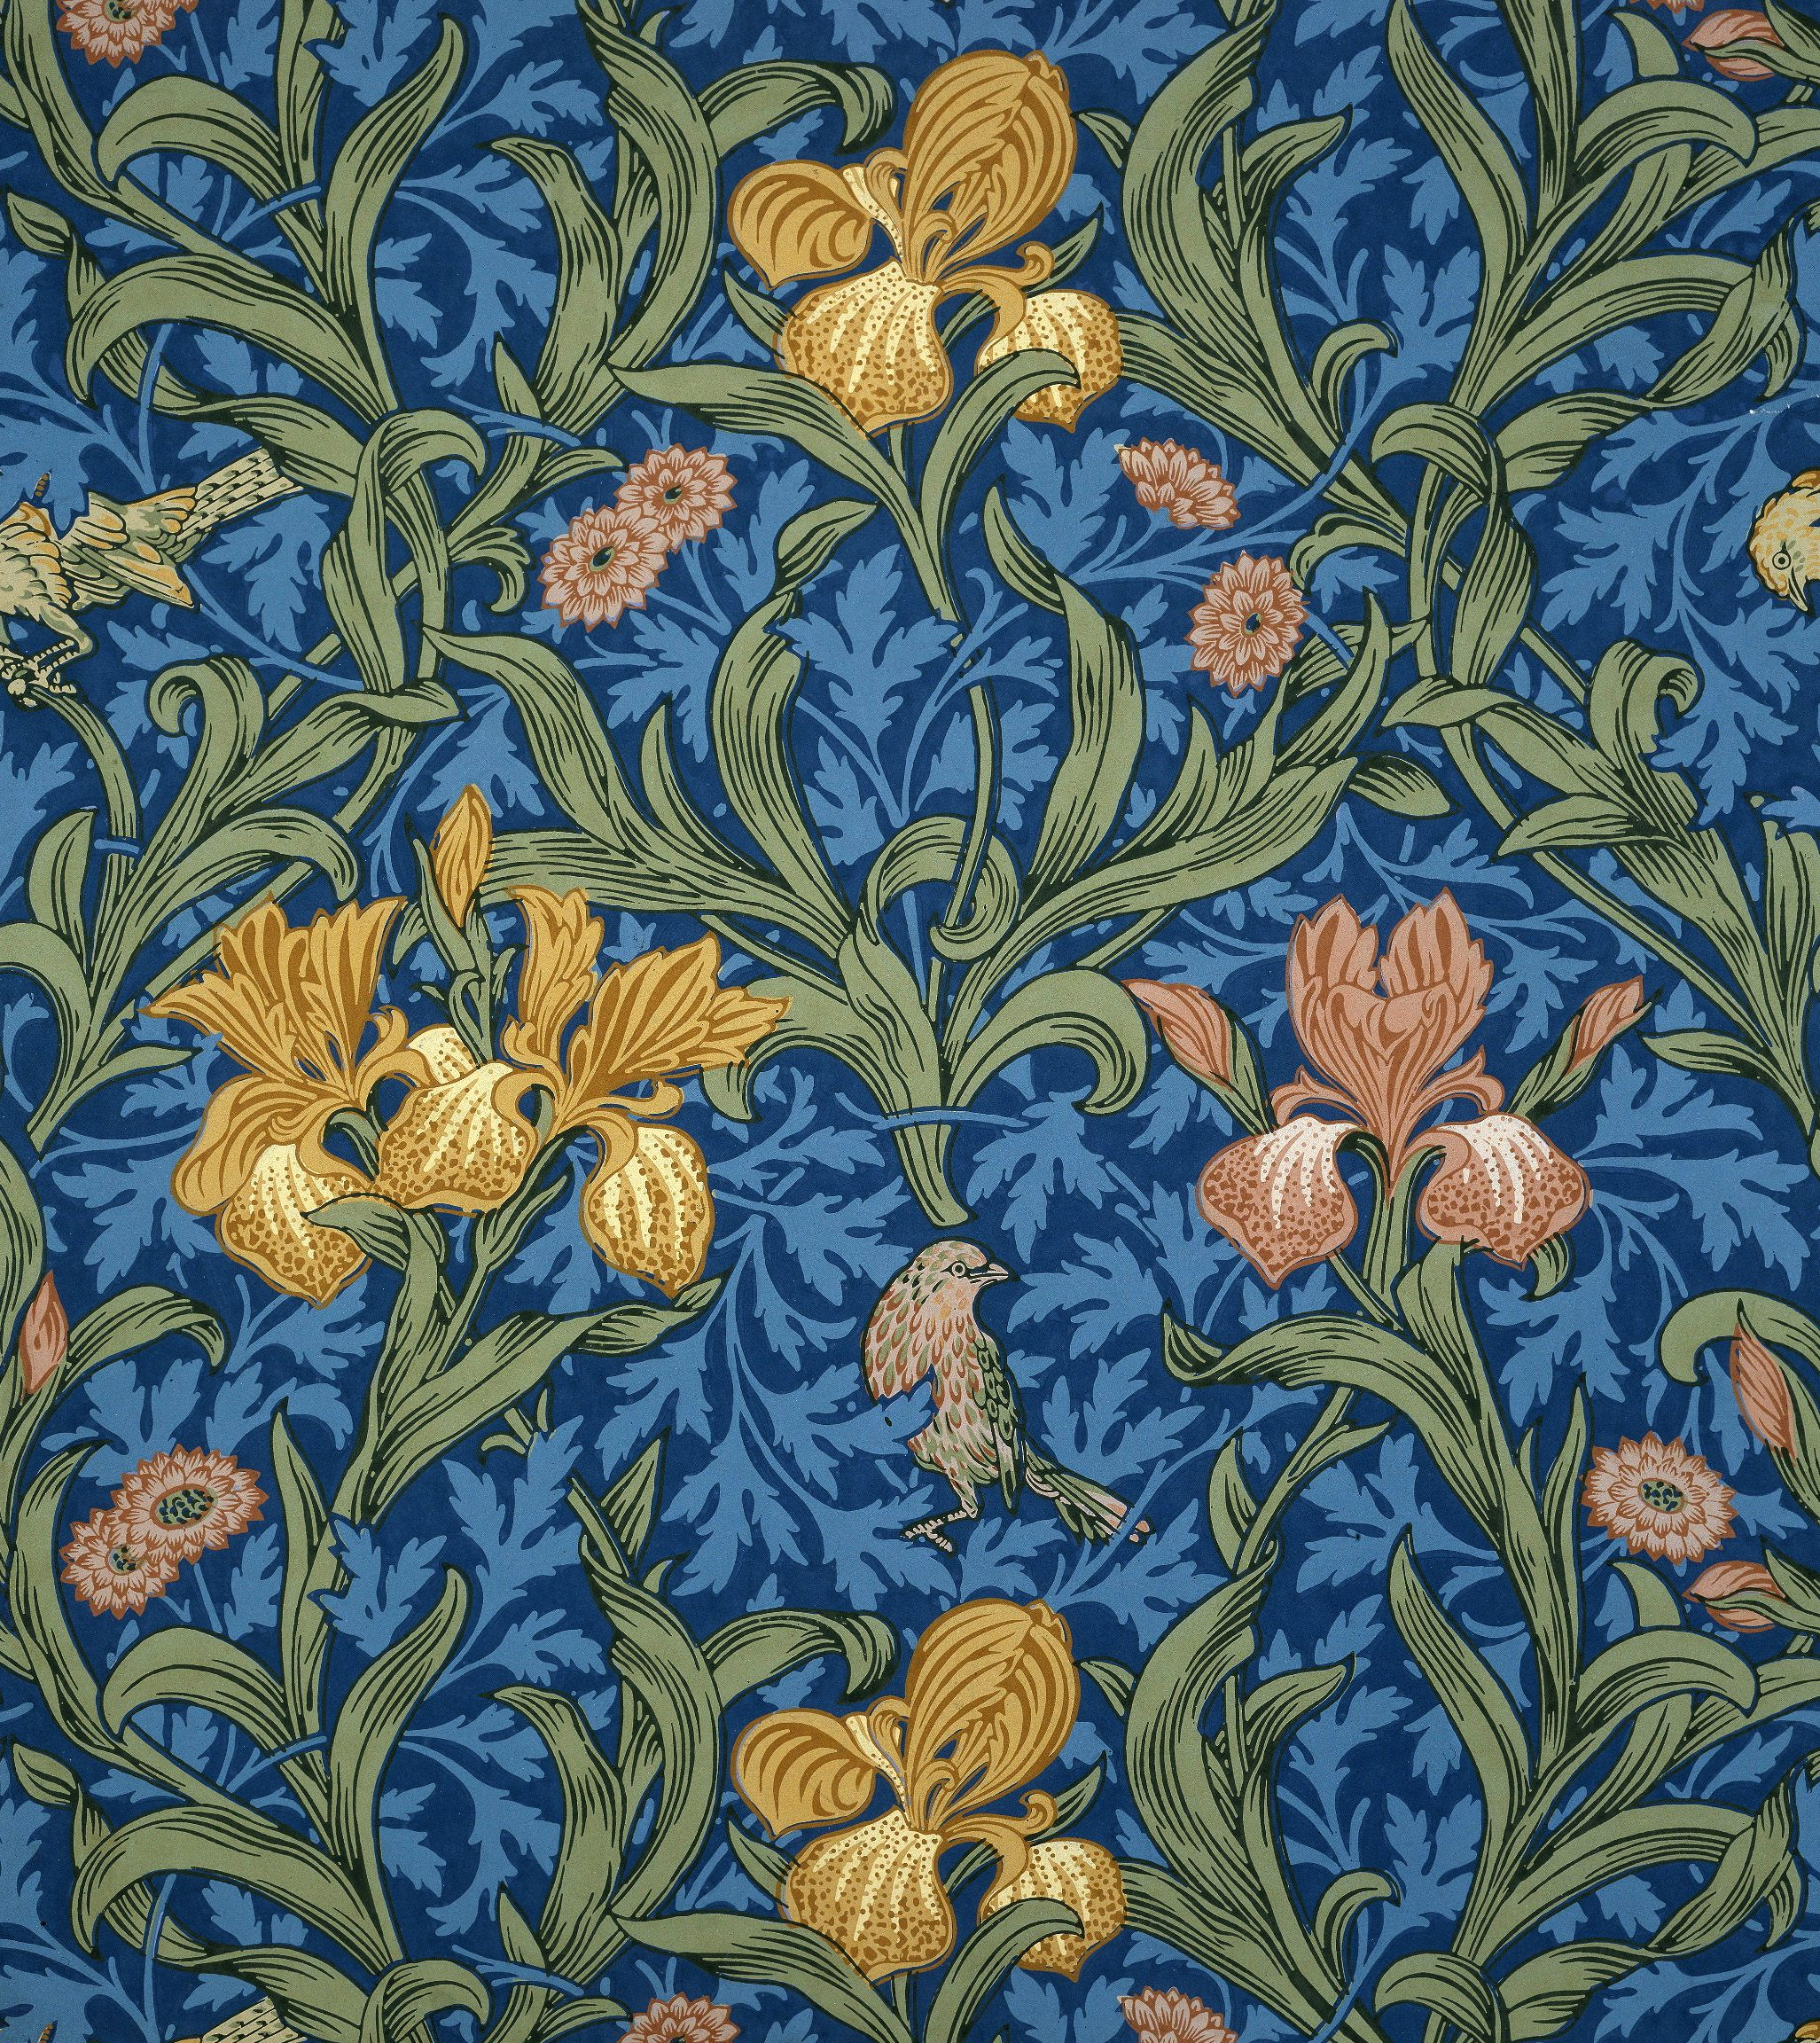 Wallpaper design by William Morris (British, 18341896